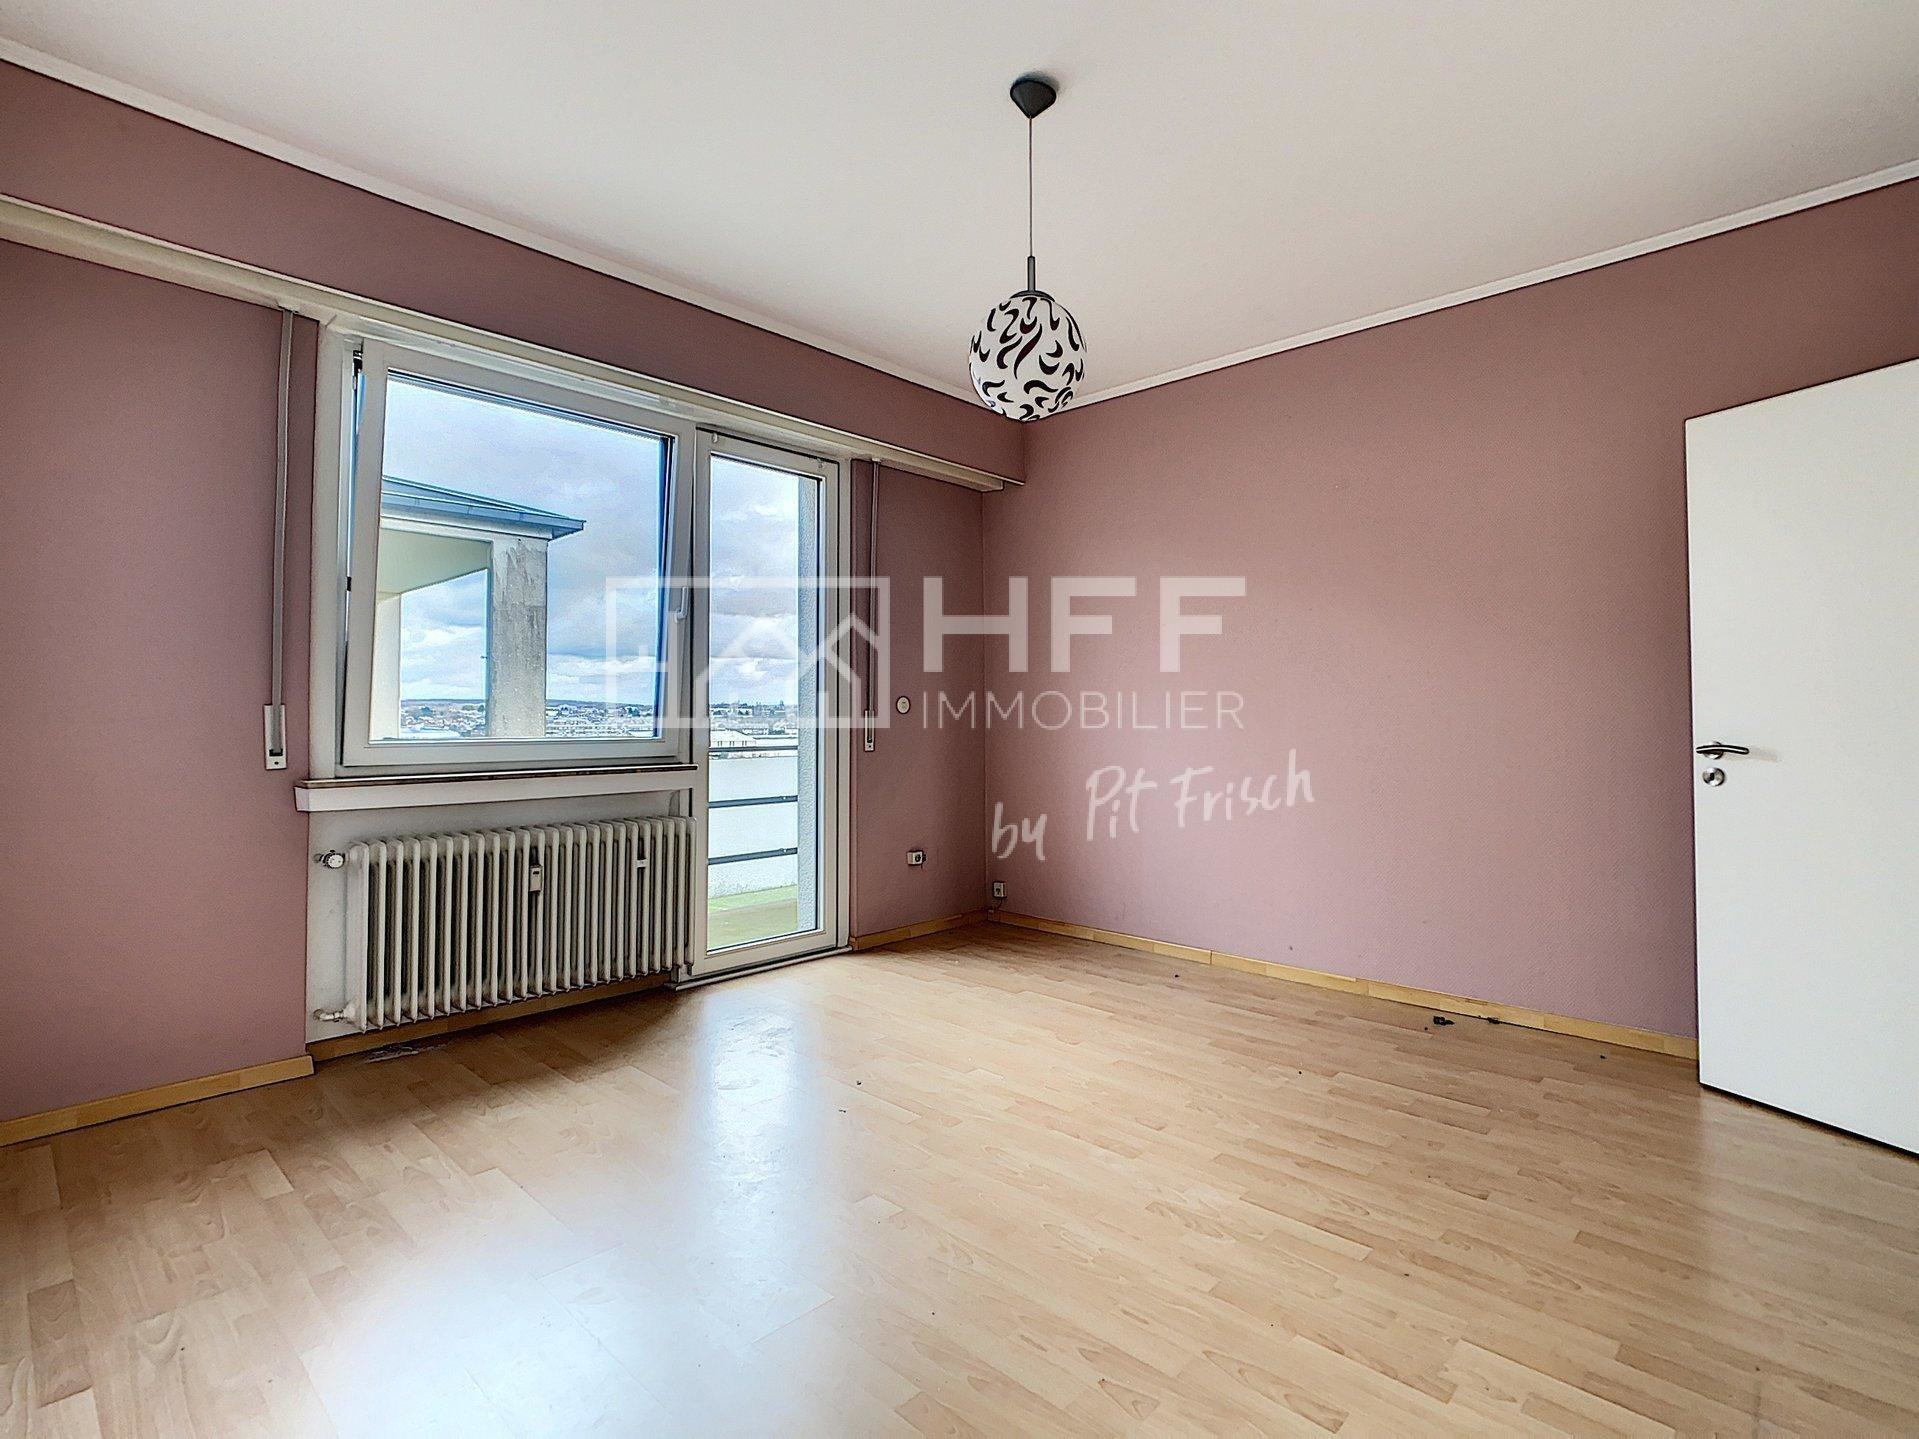 Penthouse Appartement zu Bartreng